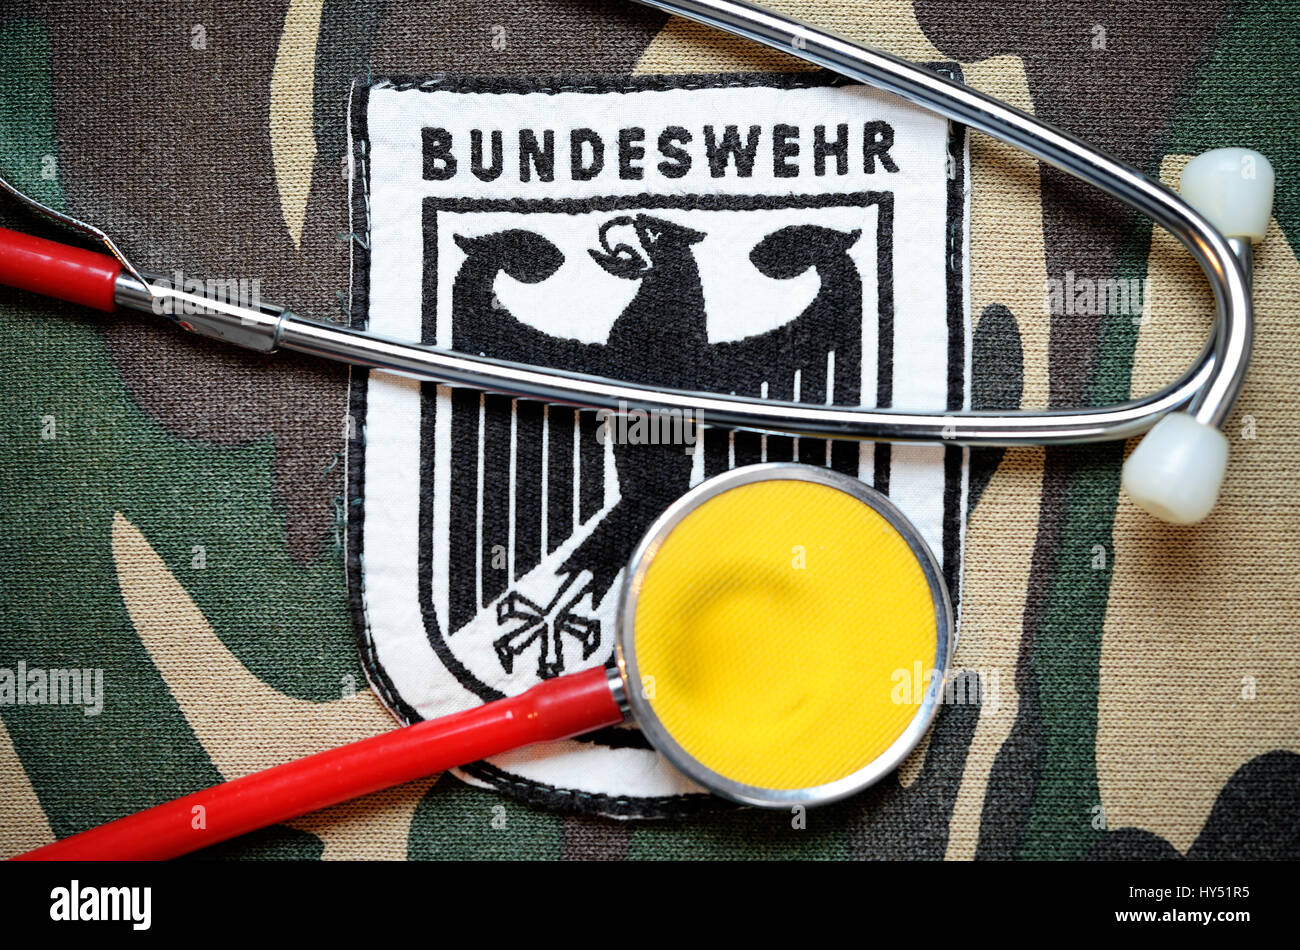 Armed forces badges with Stethoskop, symbolic photo equipment faults, Bundeswehr-Abzeichen mit Stethoskop, Symbolfoto - Stock Image